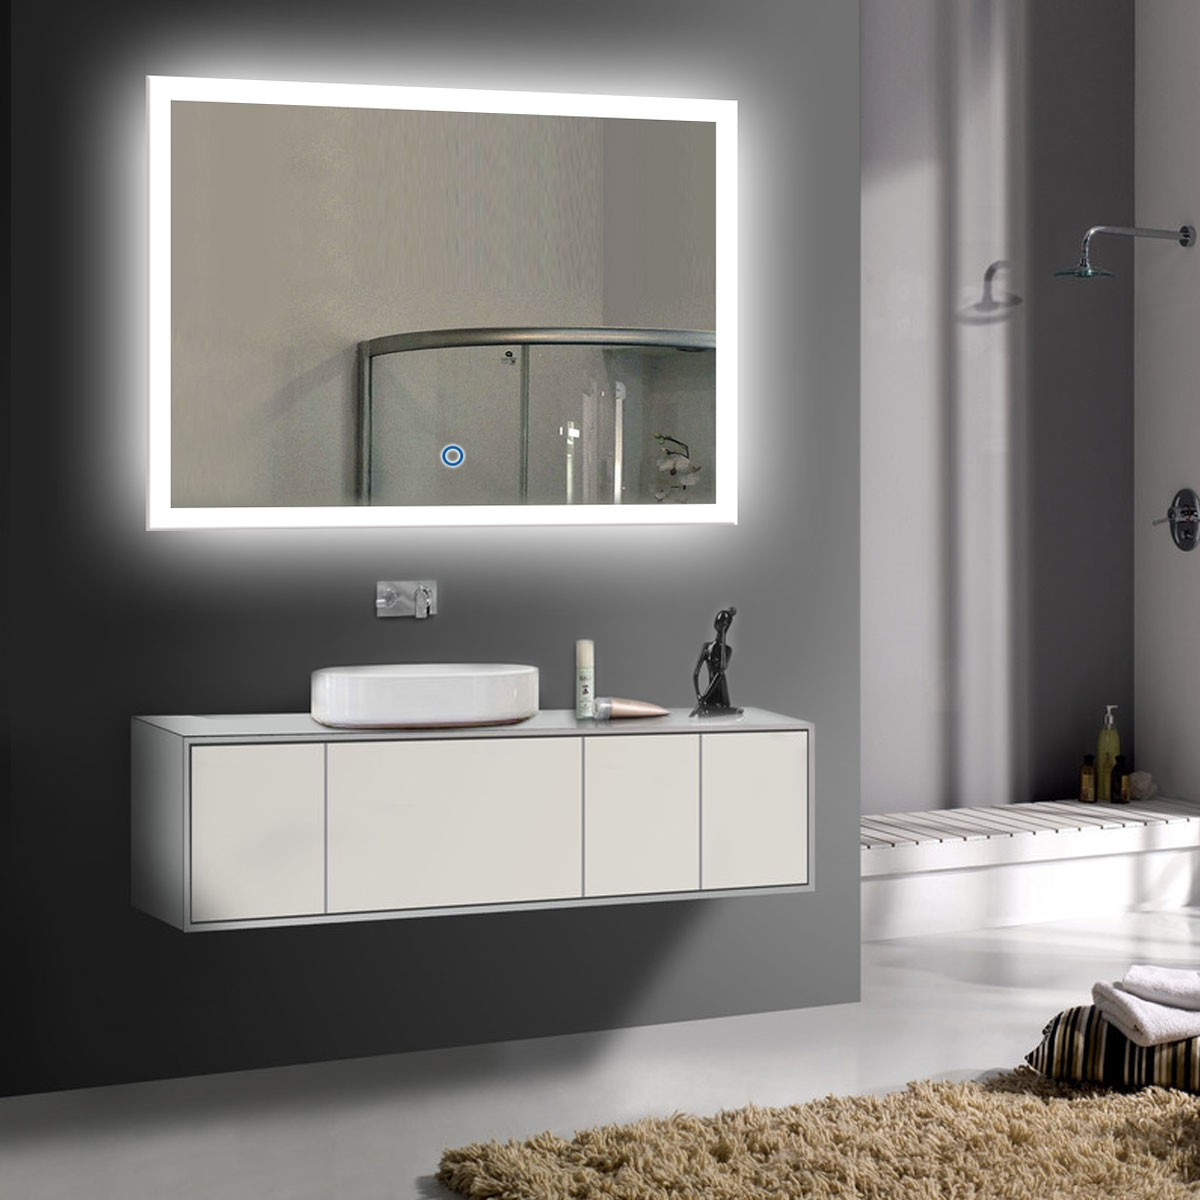 36 X 28 In Horizontal Led Bathroom Silvered Mirror With